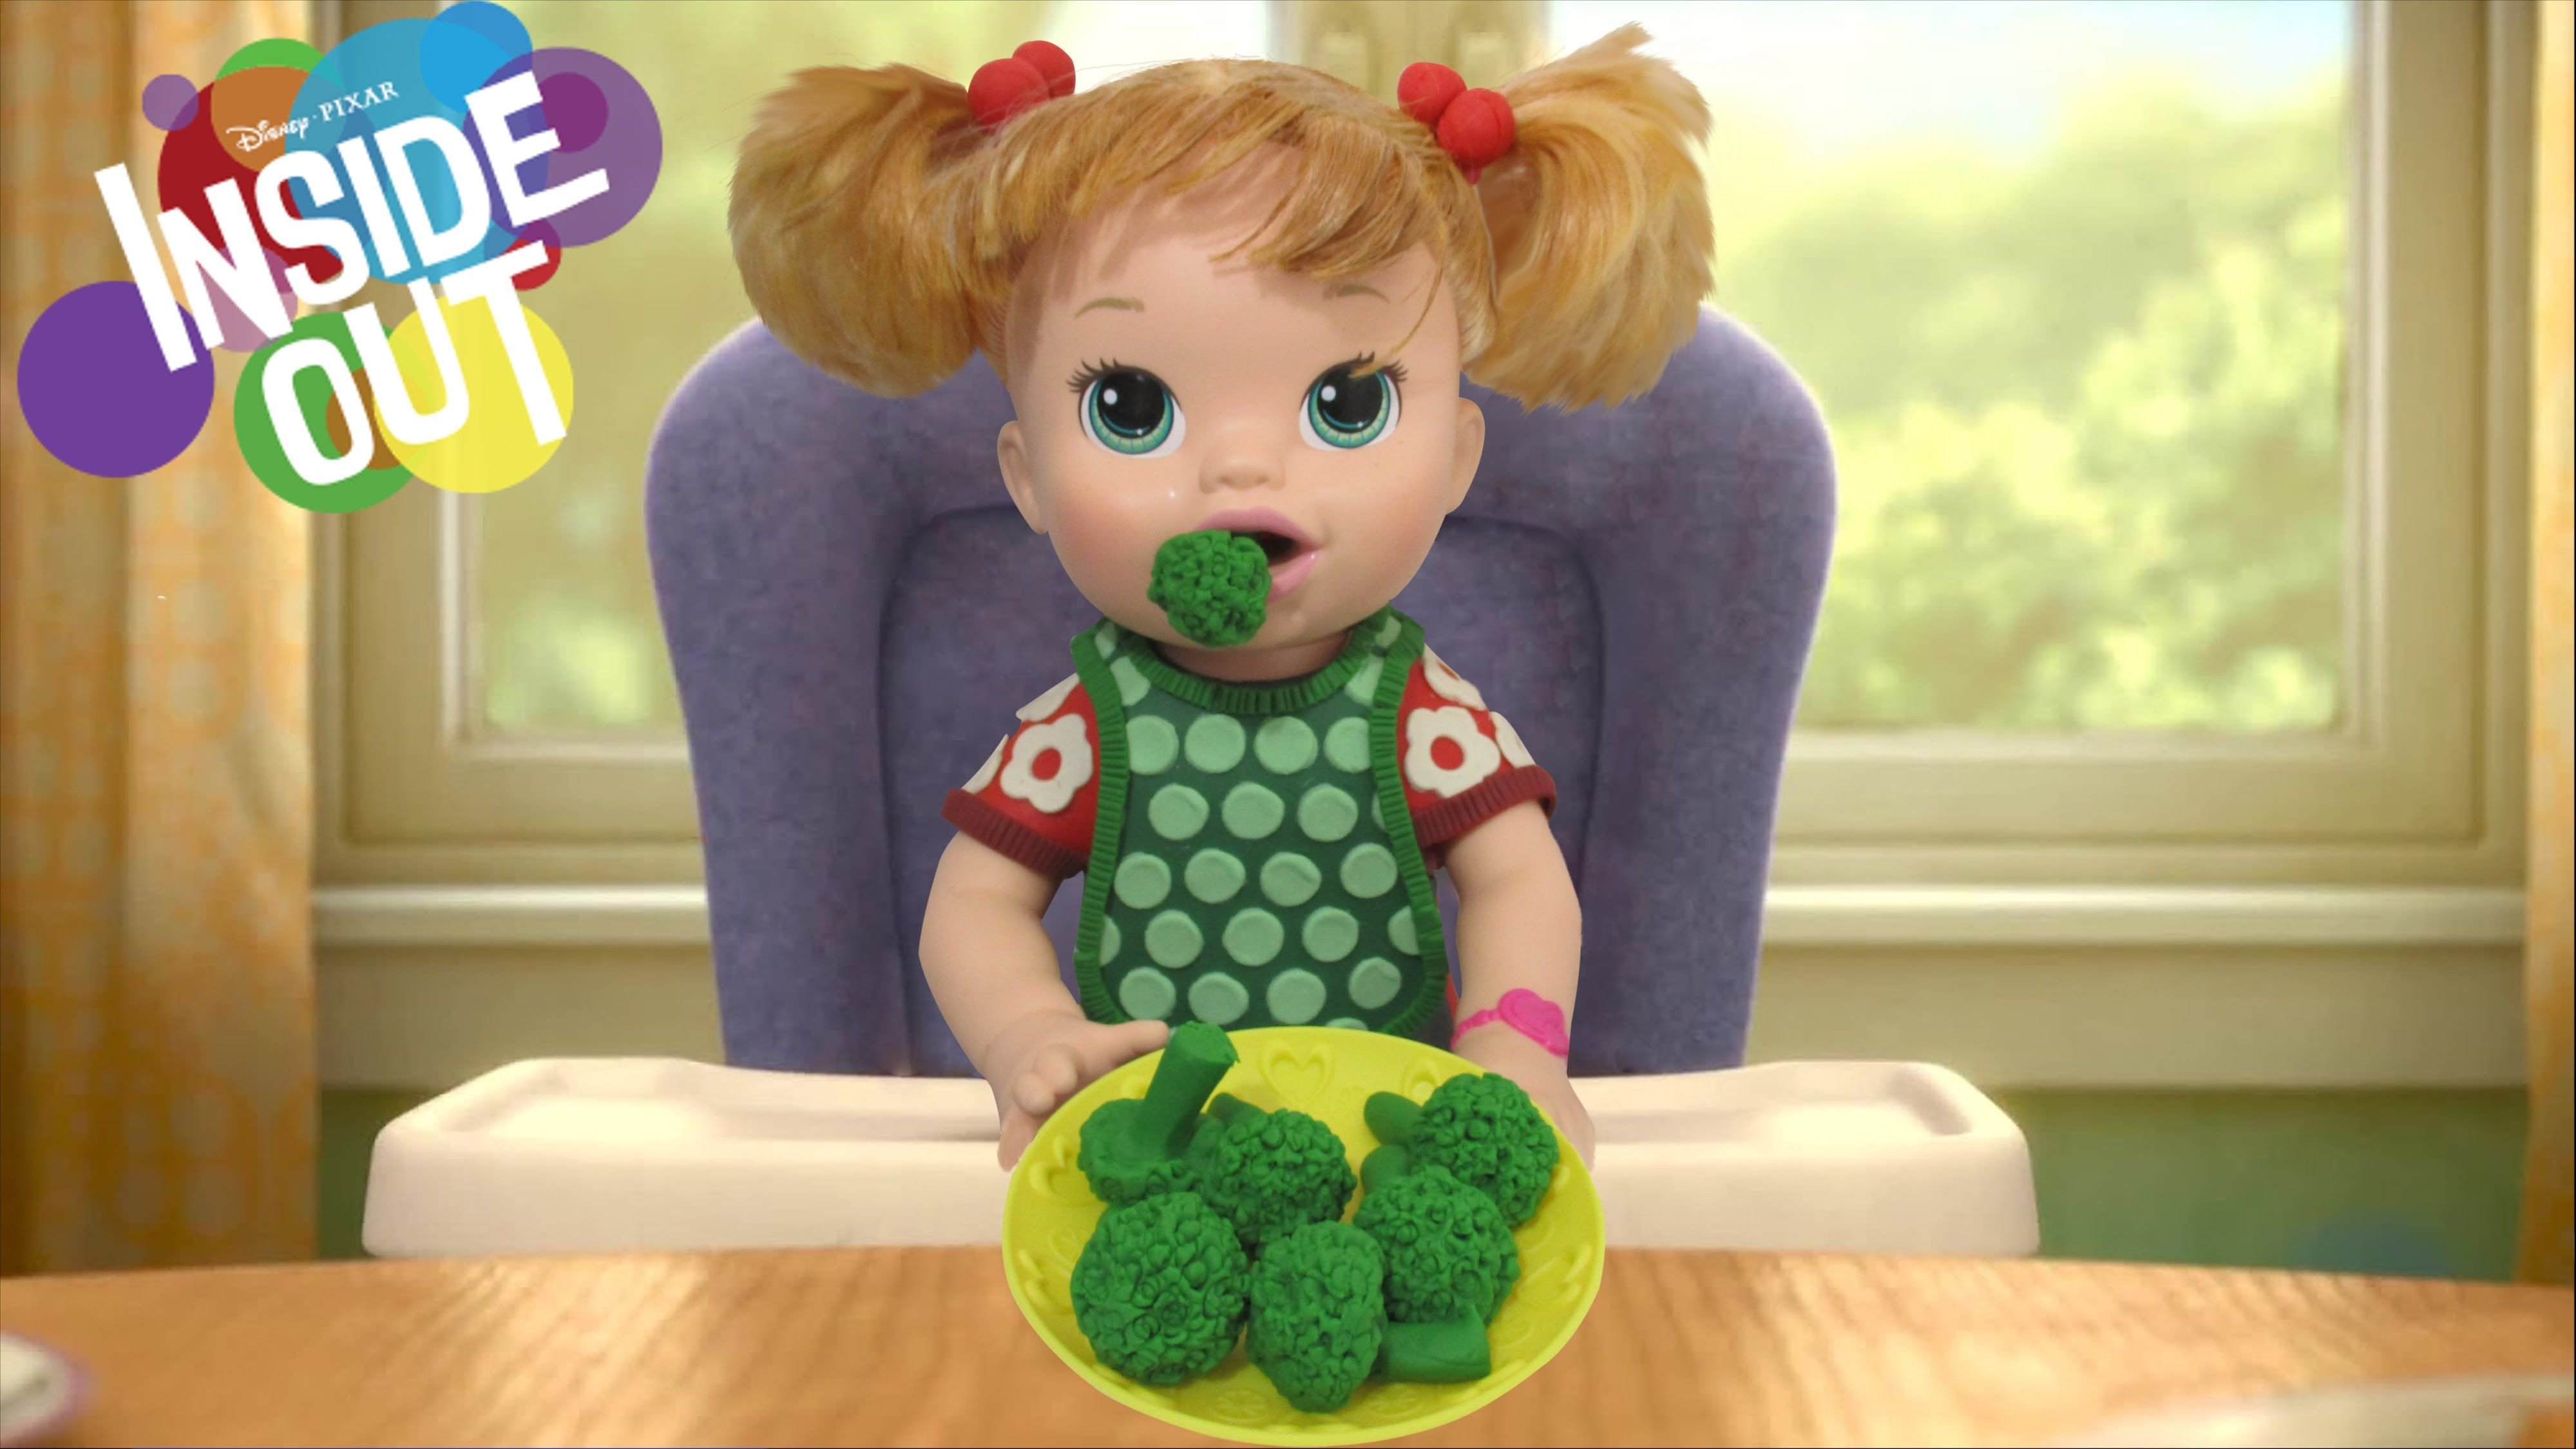 Play Doh Baby Riley Inside Out Inspired Costume Baby Alive Doll Baby Alive Dolls Baby Alive Play Doh Baby